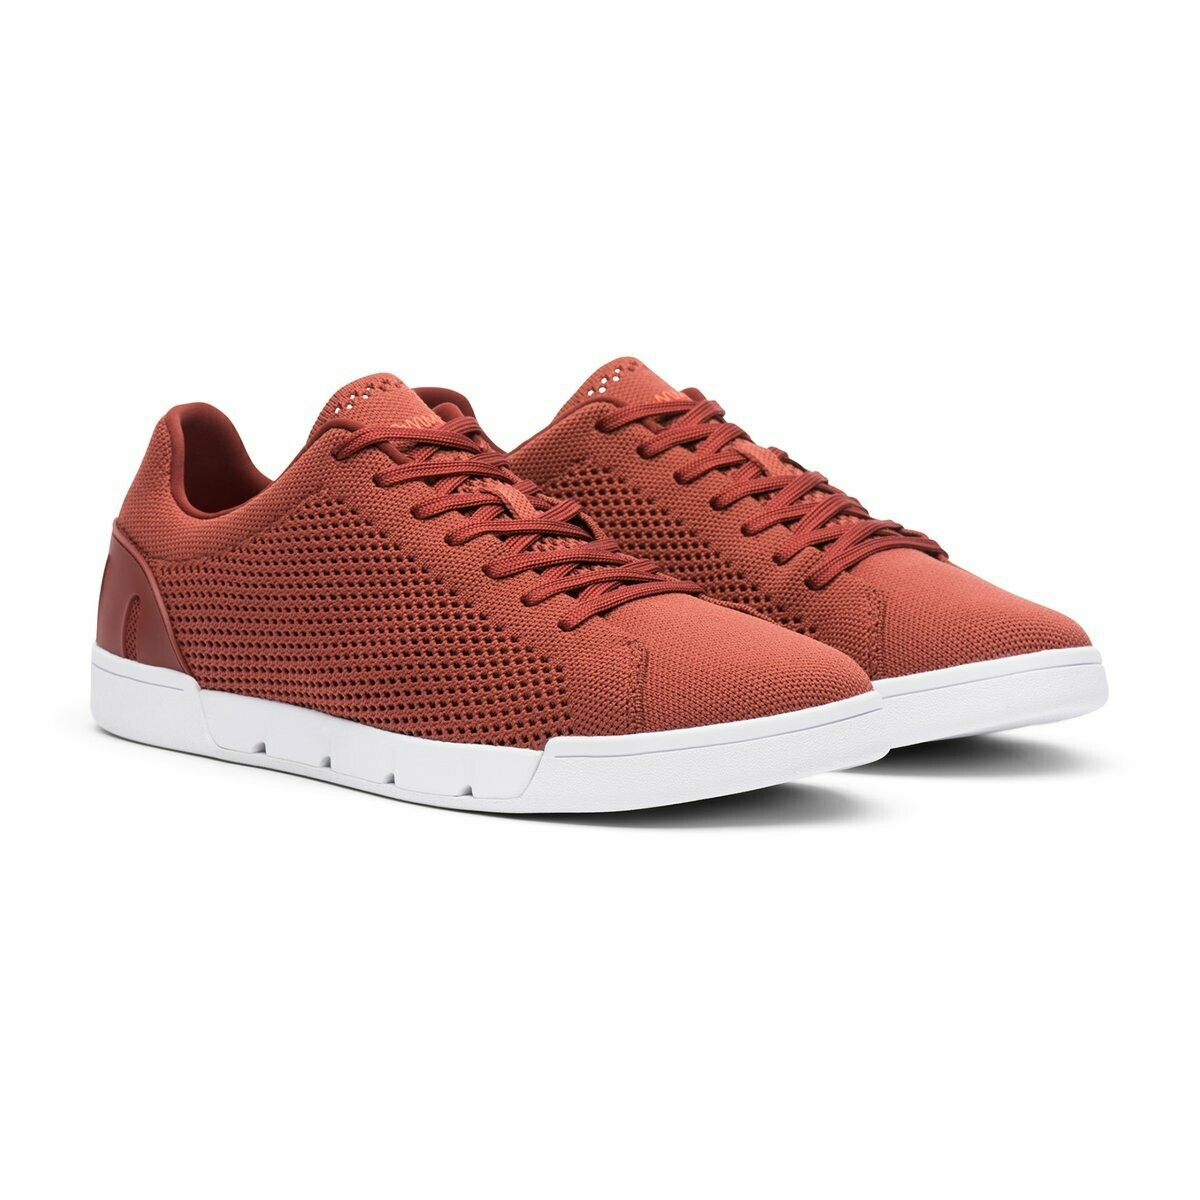 Swims Breeze Tennis Knit in Cabernet and White